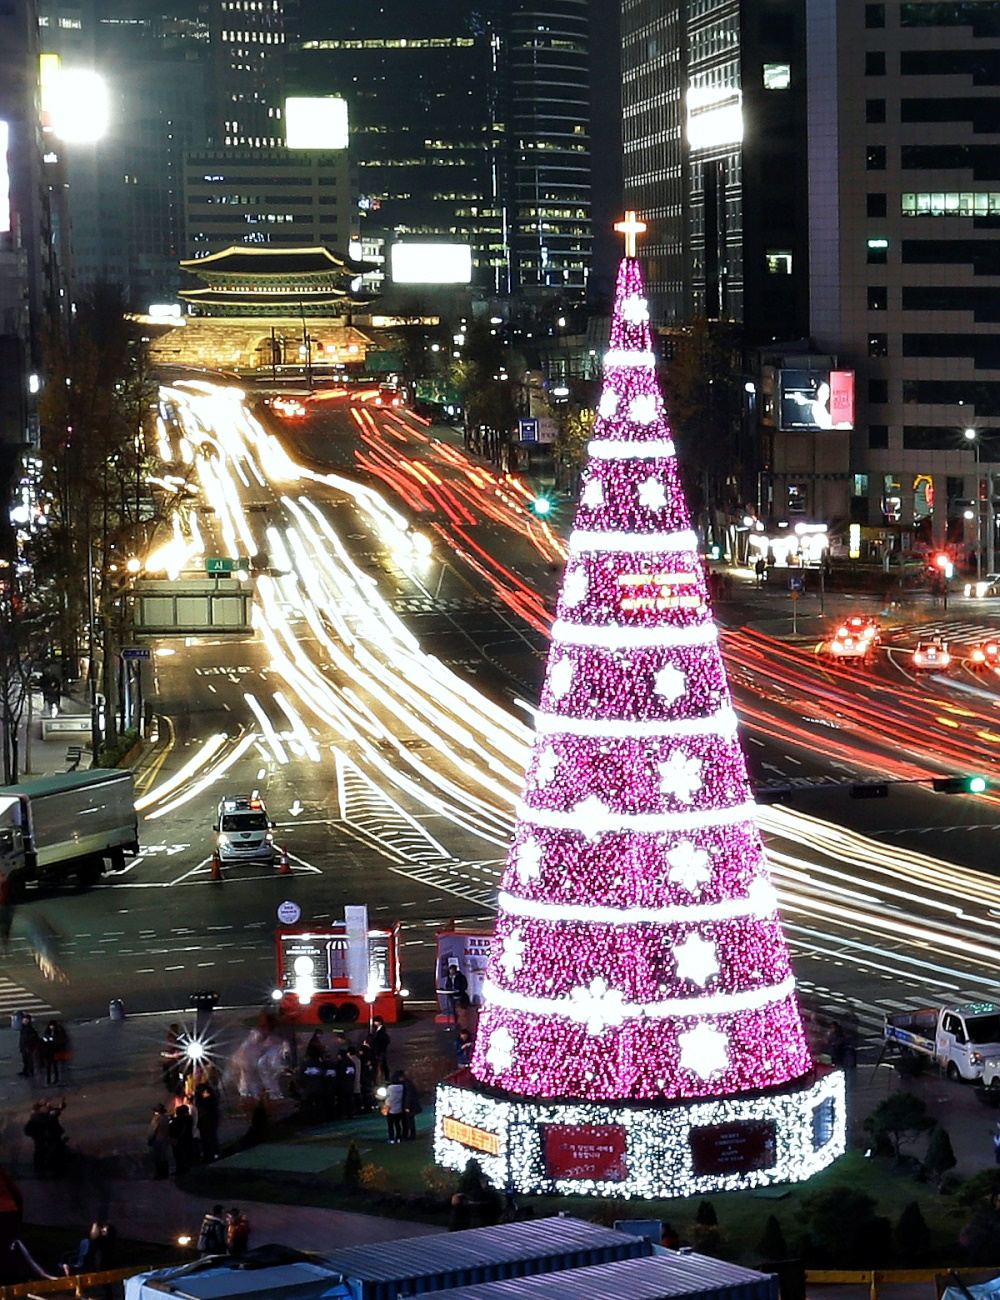 00 New Year Trees 06. Seoul ROK. 01.01.15